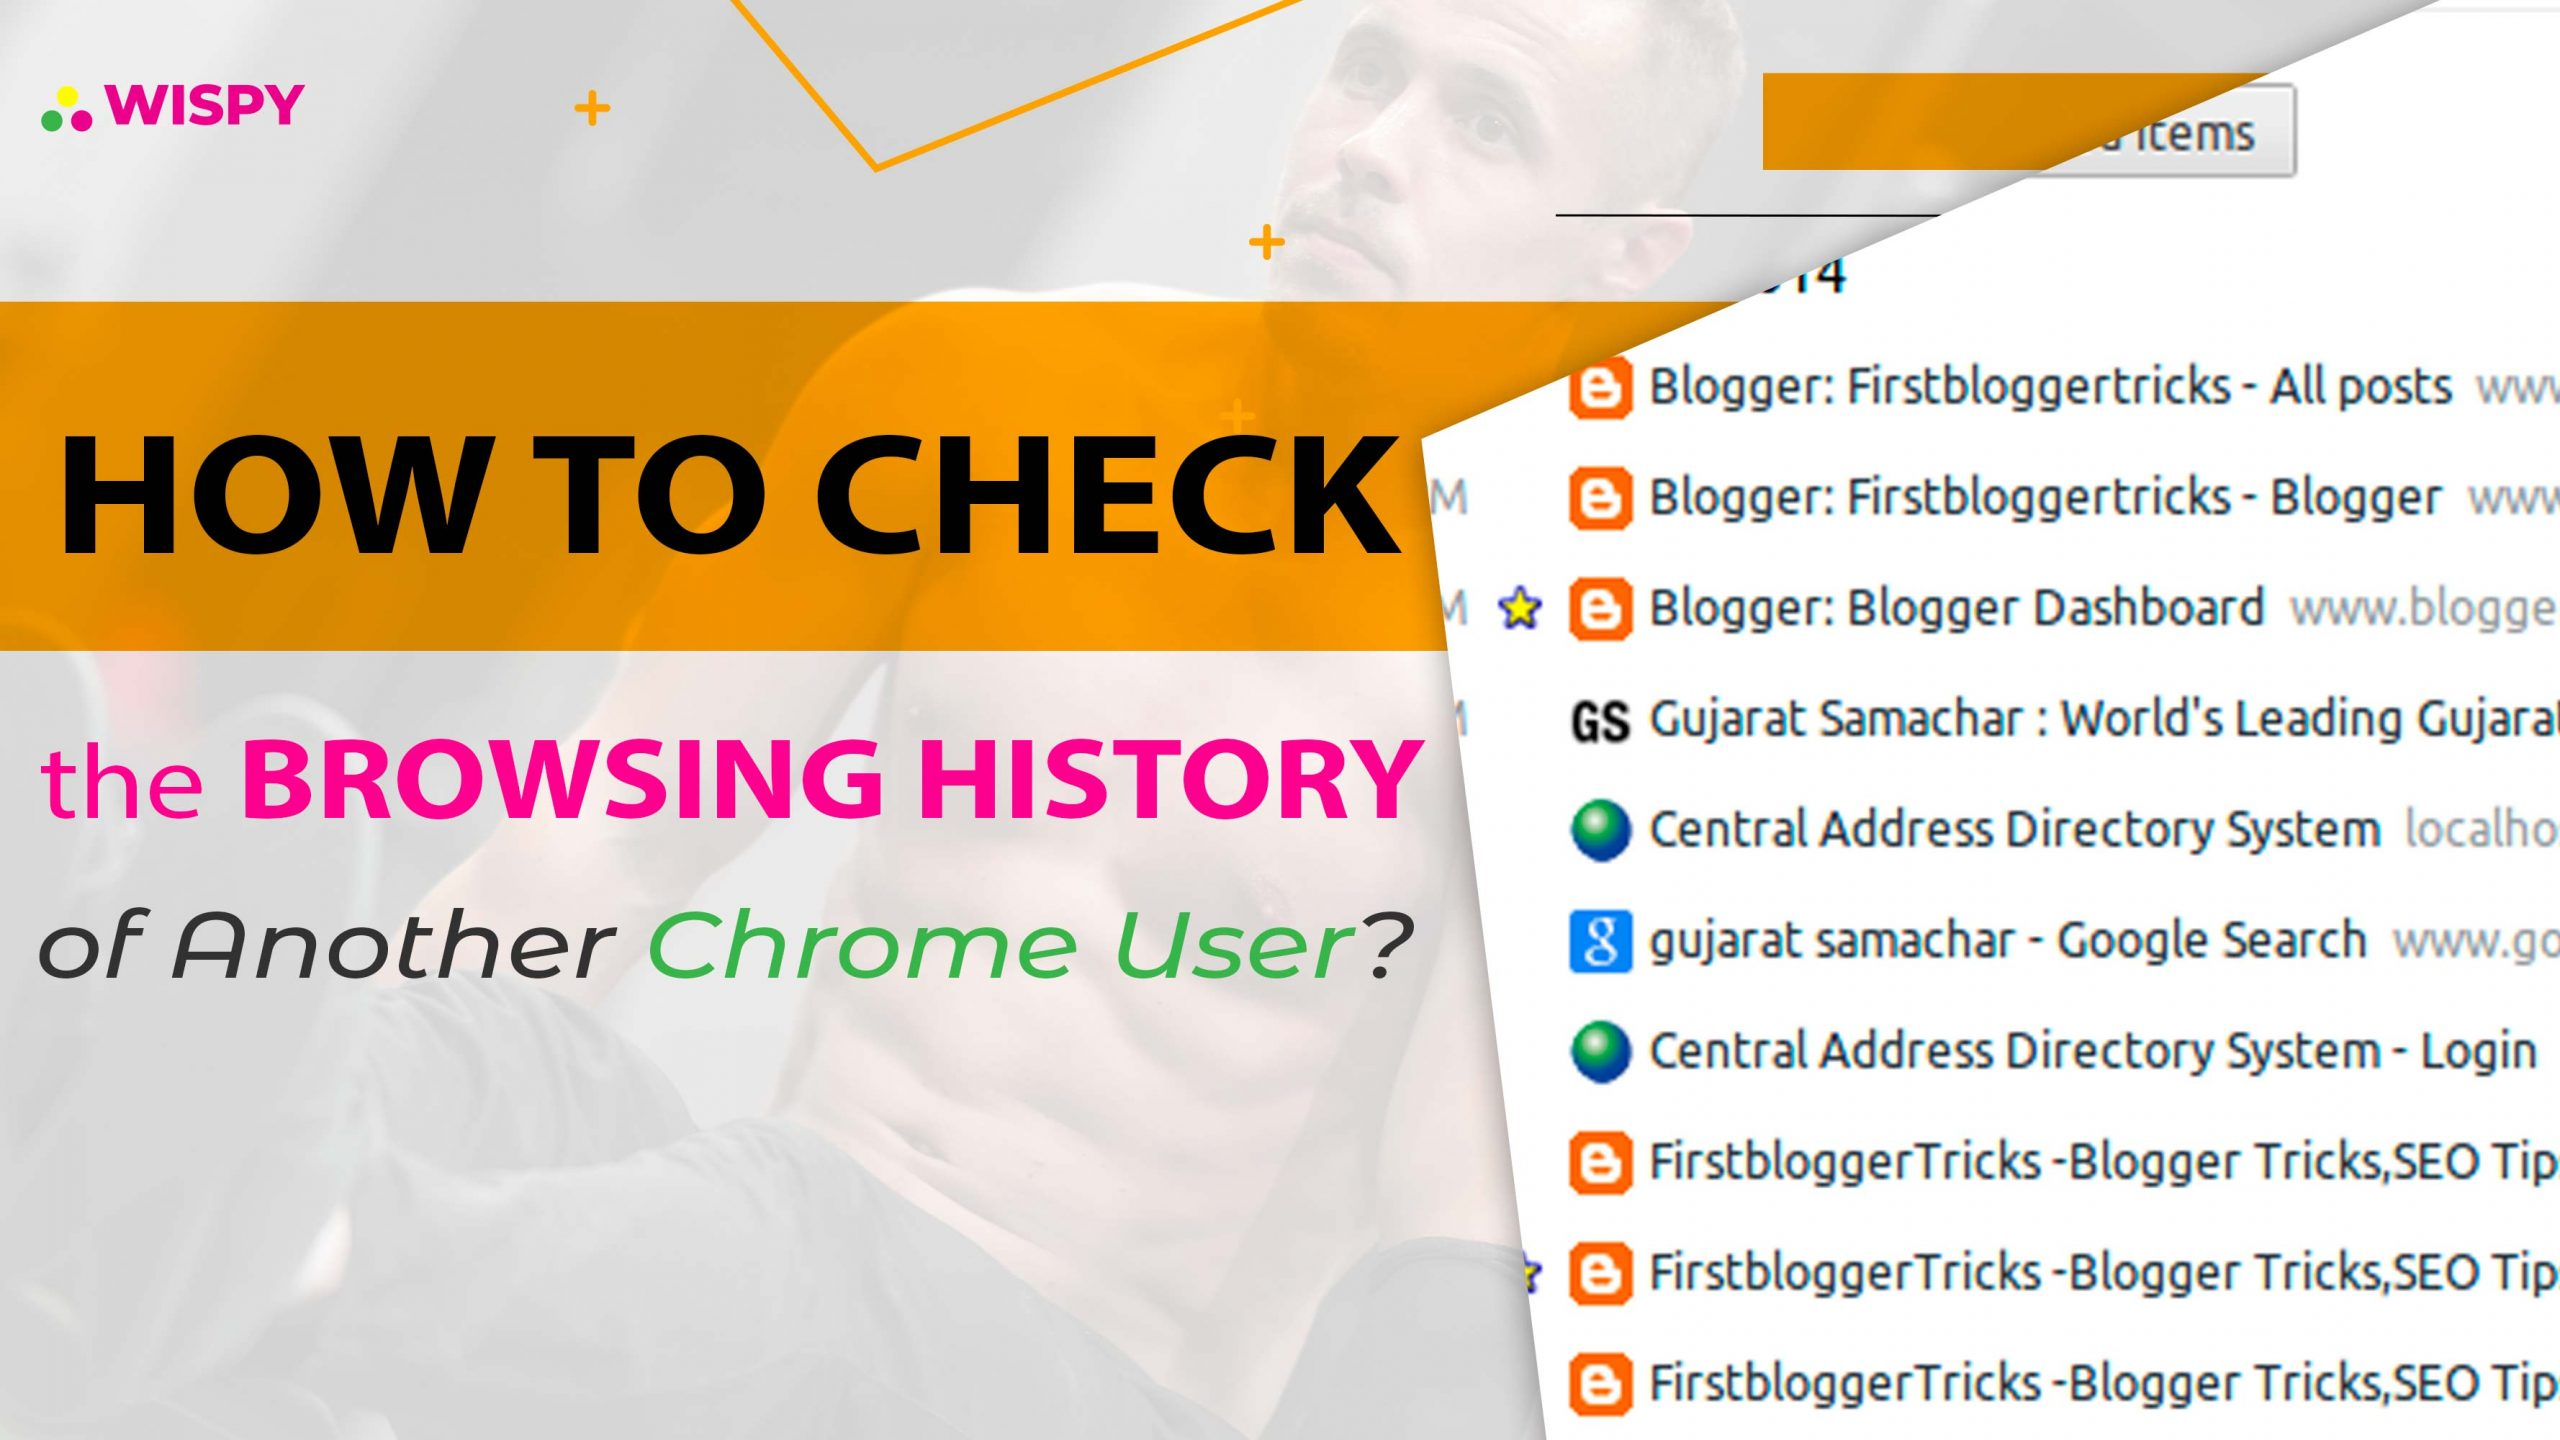 How to Check the Browsing History of Another Chrome User?